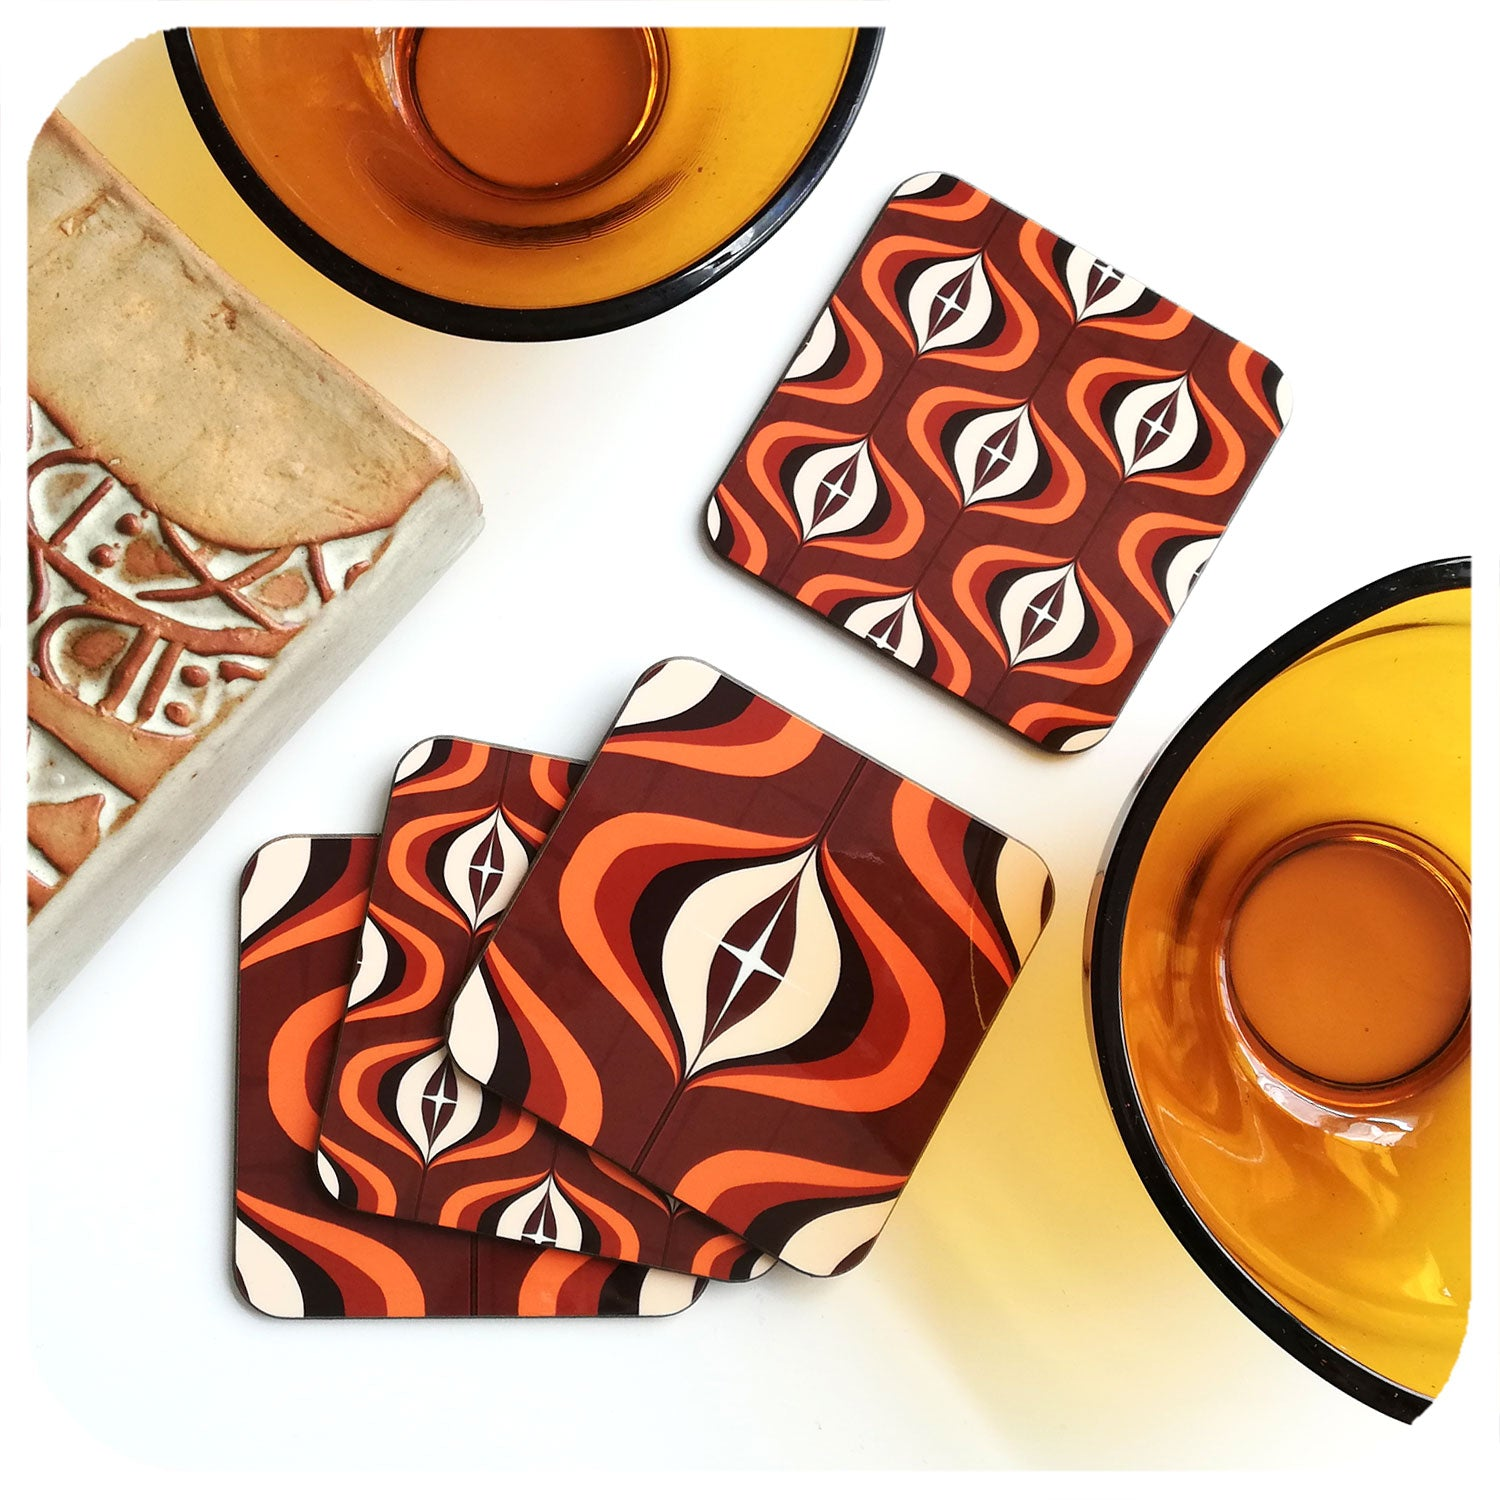 70s Set of 4 Op Art coasters in Brown and Orange | The Inkabilly Emporium